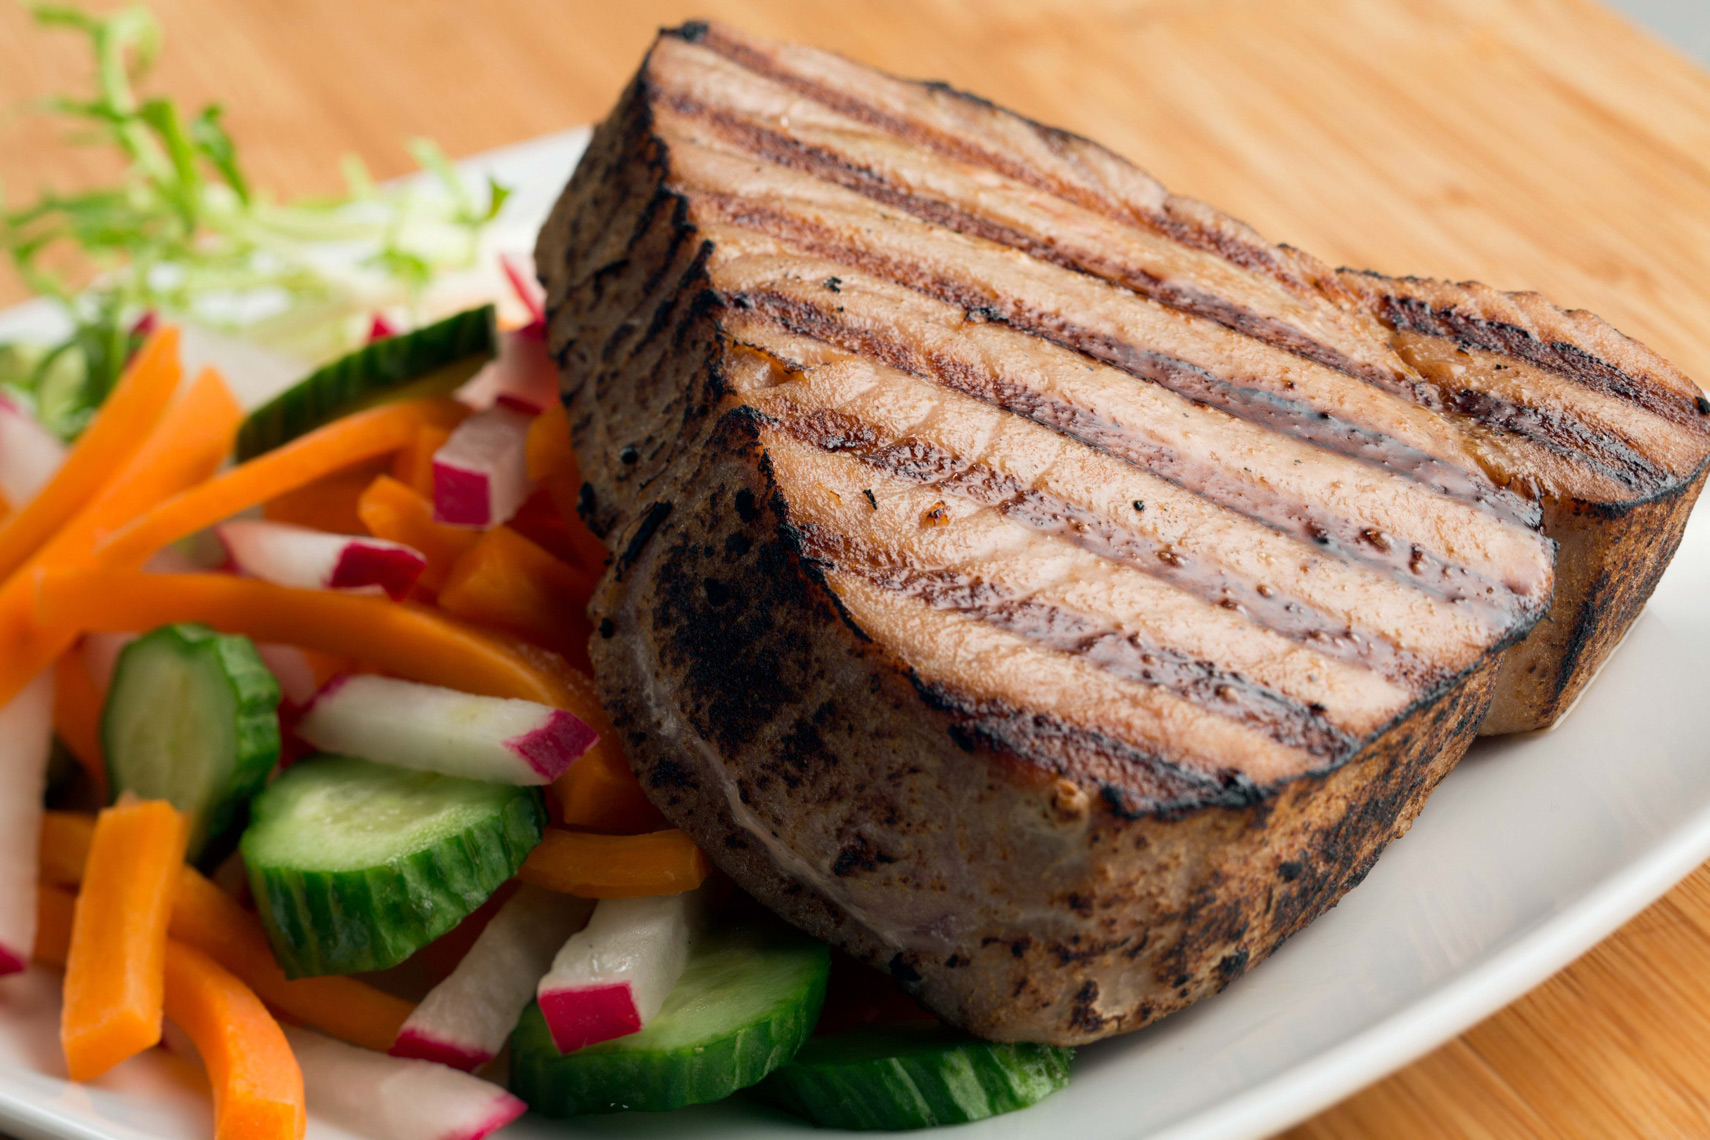 GrilledTunaSteak-copy